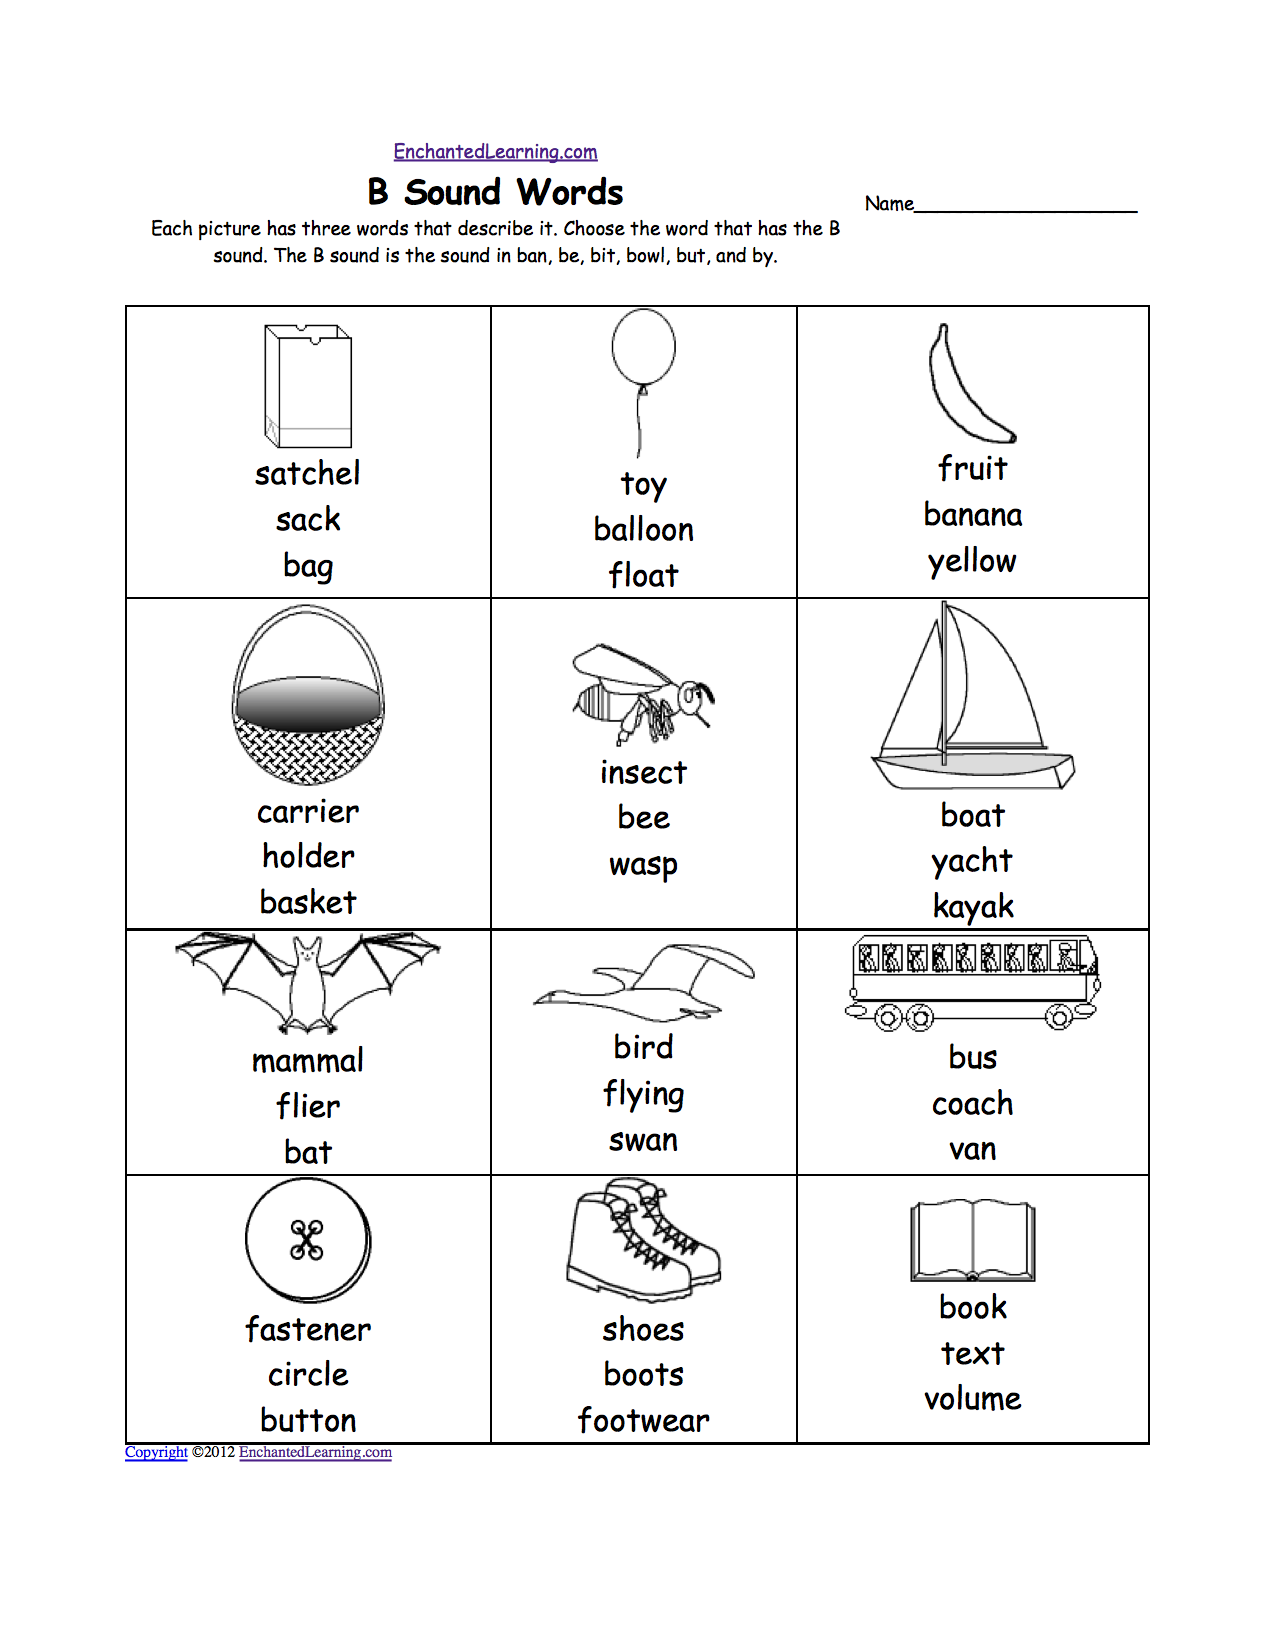 Weirdmailus  Seductive Phonics Worksheets Multiple Choice Worksheets To Print  With Gorgeous Quotbquot Sound Phonics Worksheet Multiple Choice Each Picture Has Three Words That Describe It Choose The Word That Has A Quotbquot Sound The Quotbquot Sound Is The Sound  With Nice Climate Map Worksheet Also Free Handwriting Worksheets For Adults In Addition Choose My Plate Worksheets And Mean Median Mode Range Worksheets Th Grade As Well As Worksheets On Ecosystems Additionally Phonics Worksheets Grade  From Enchantedlearningcom With Weirdmailus  Gorgeous Phonics Worksheets Multiple Choice Worksheets To Print  With Nice Quotbquot Sound Phonics Worksheet Multiple Choice Each Picture Has Three Words That Describe It Choose The Word That Has A Quotbquot Sound The Quotbquot Sound Is The Sound  And Seductive Climate Map Worksheet Also Free Handwriting Worksheets For Adults In Addition Choose My Plate Worksheets From Enchantedlearningcom